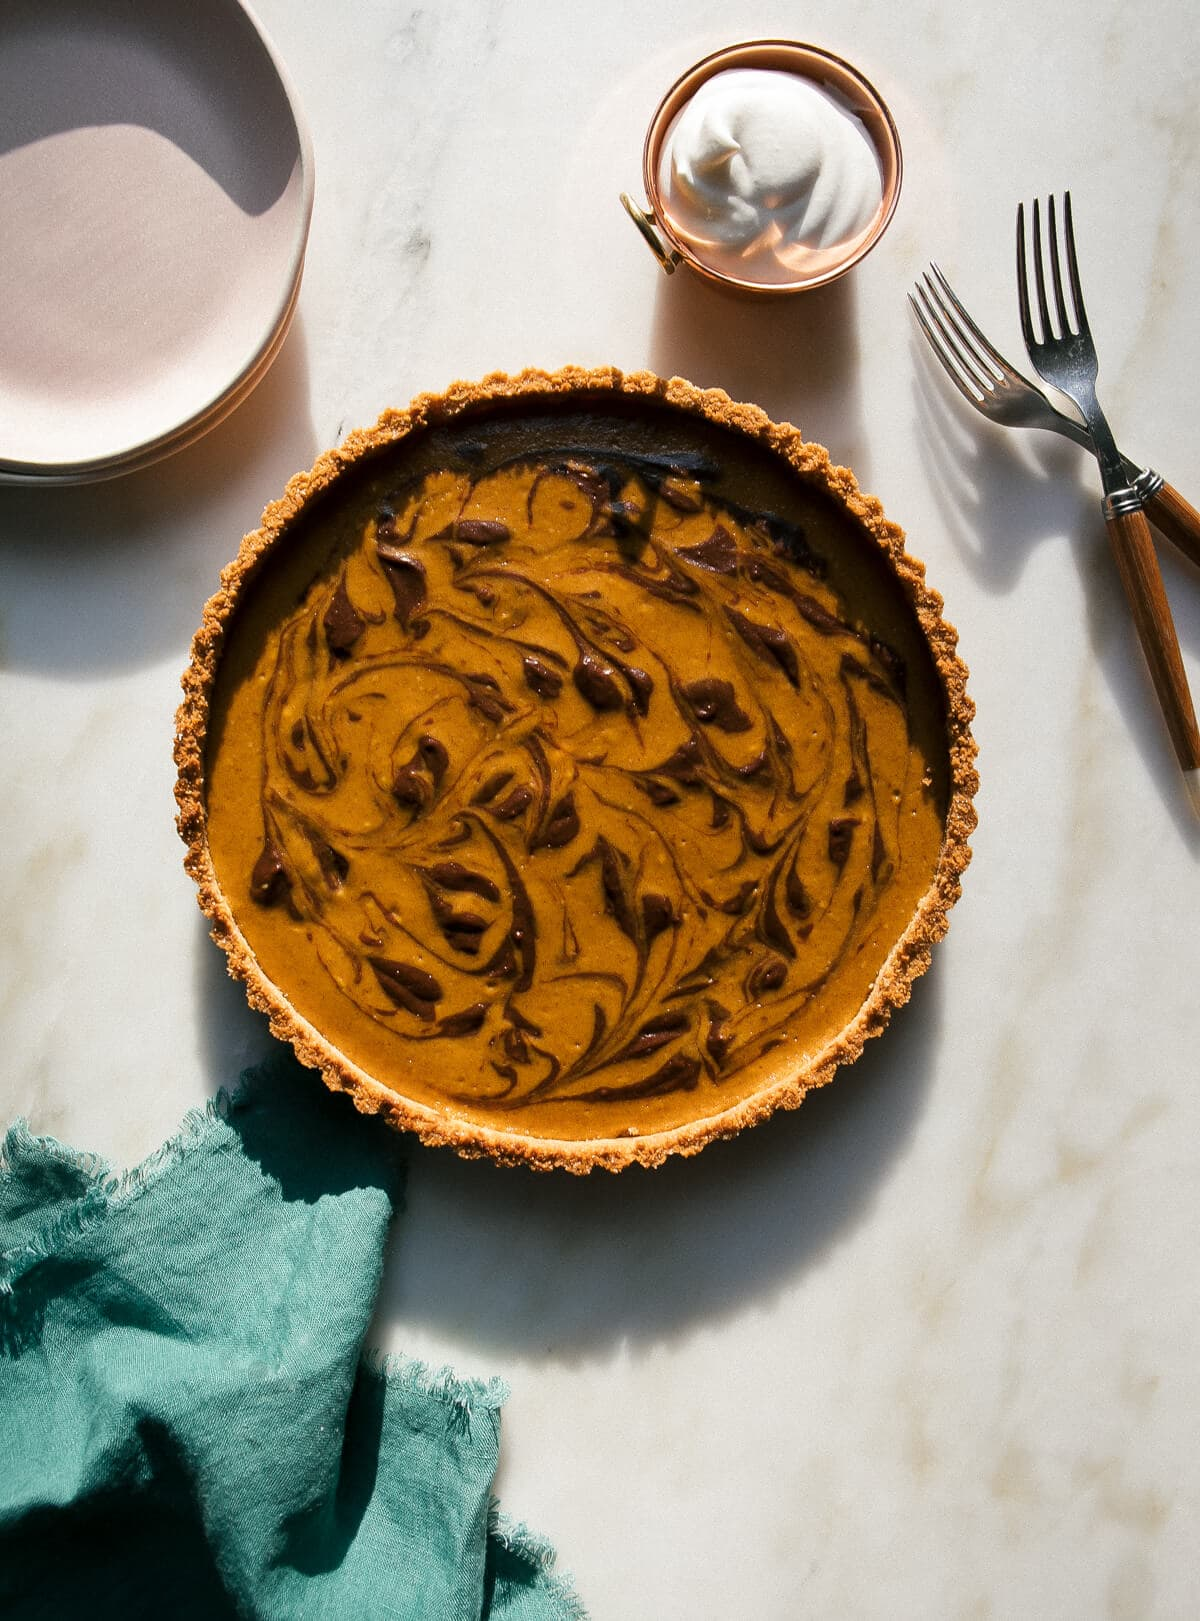 40 Recipes to Make for Thanksgiving